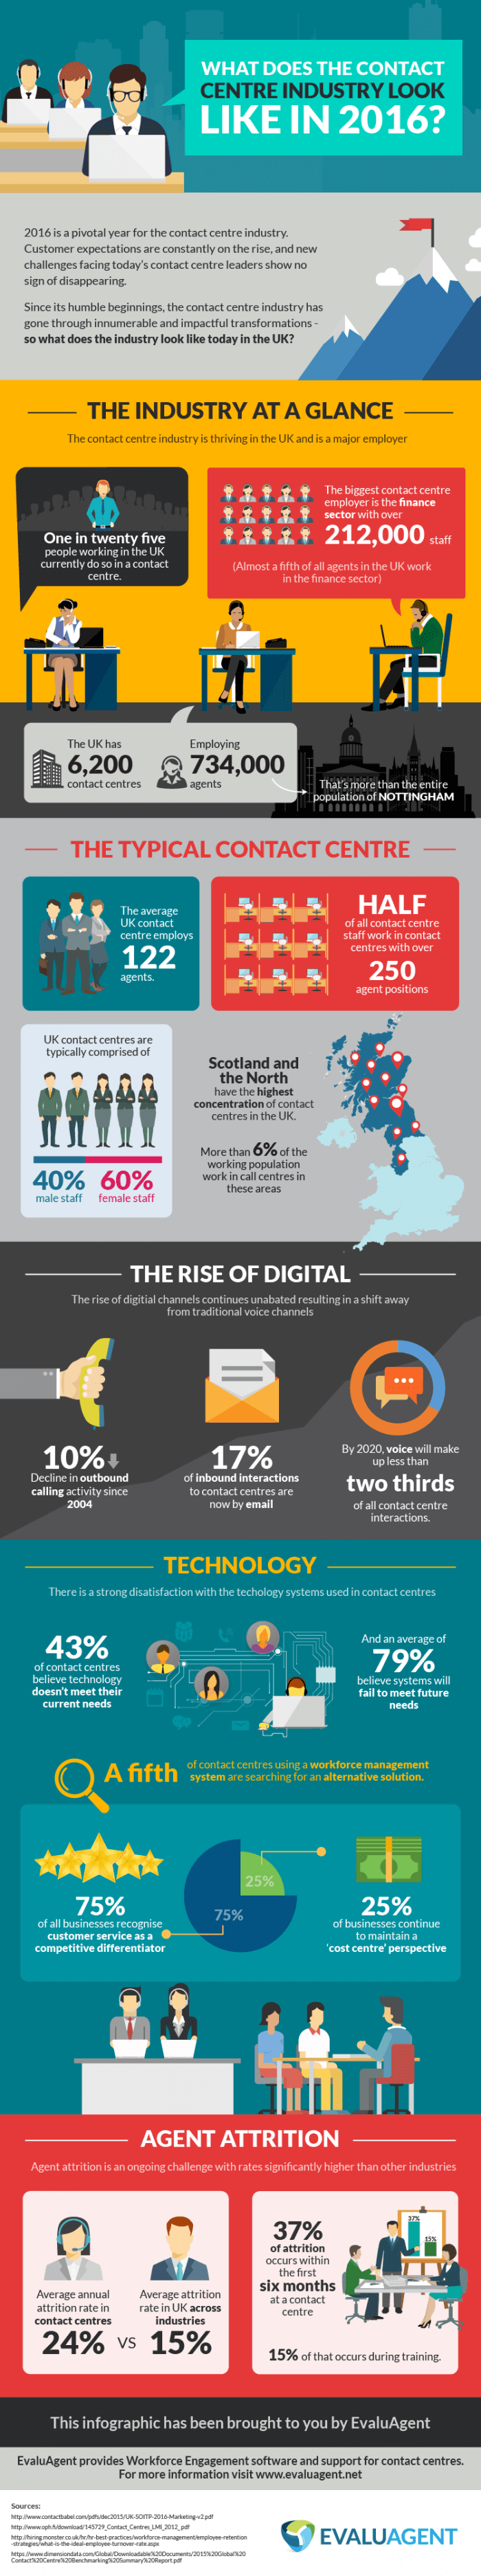 contact-centre-industry-infographic